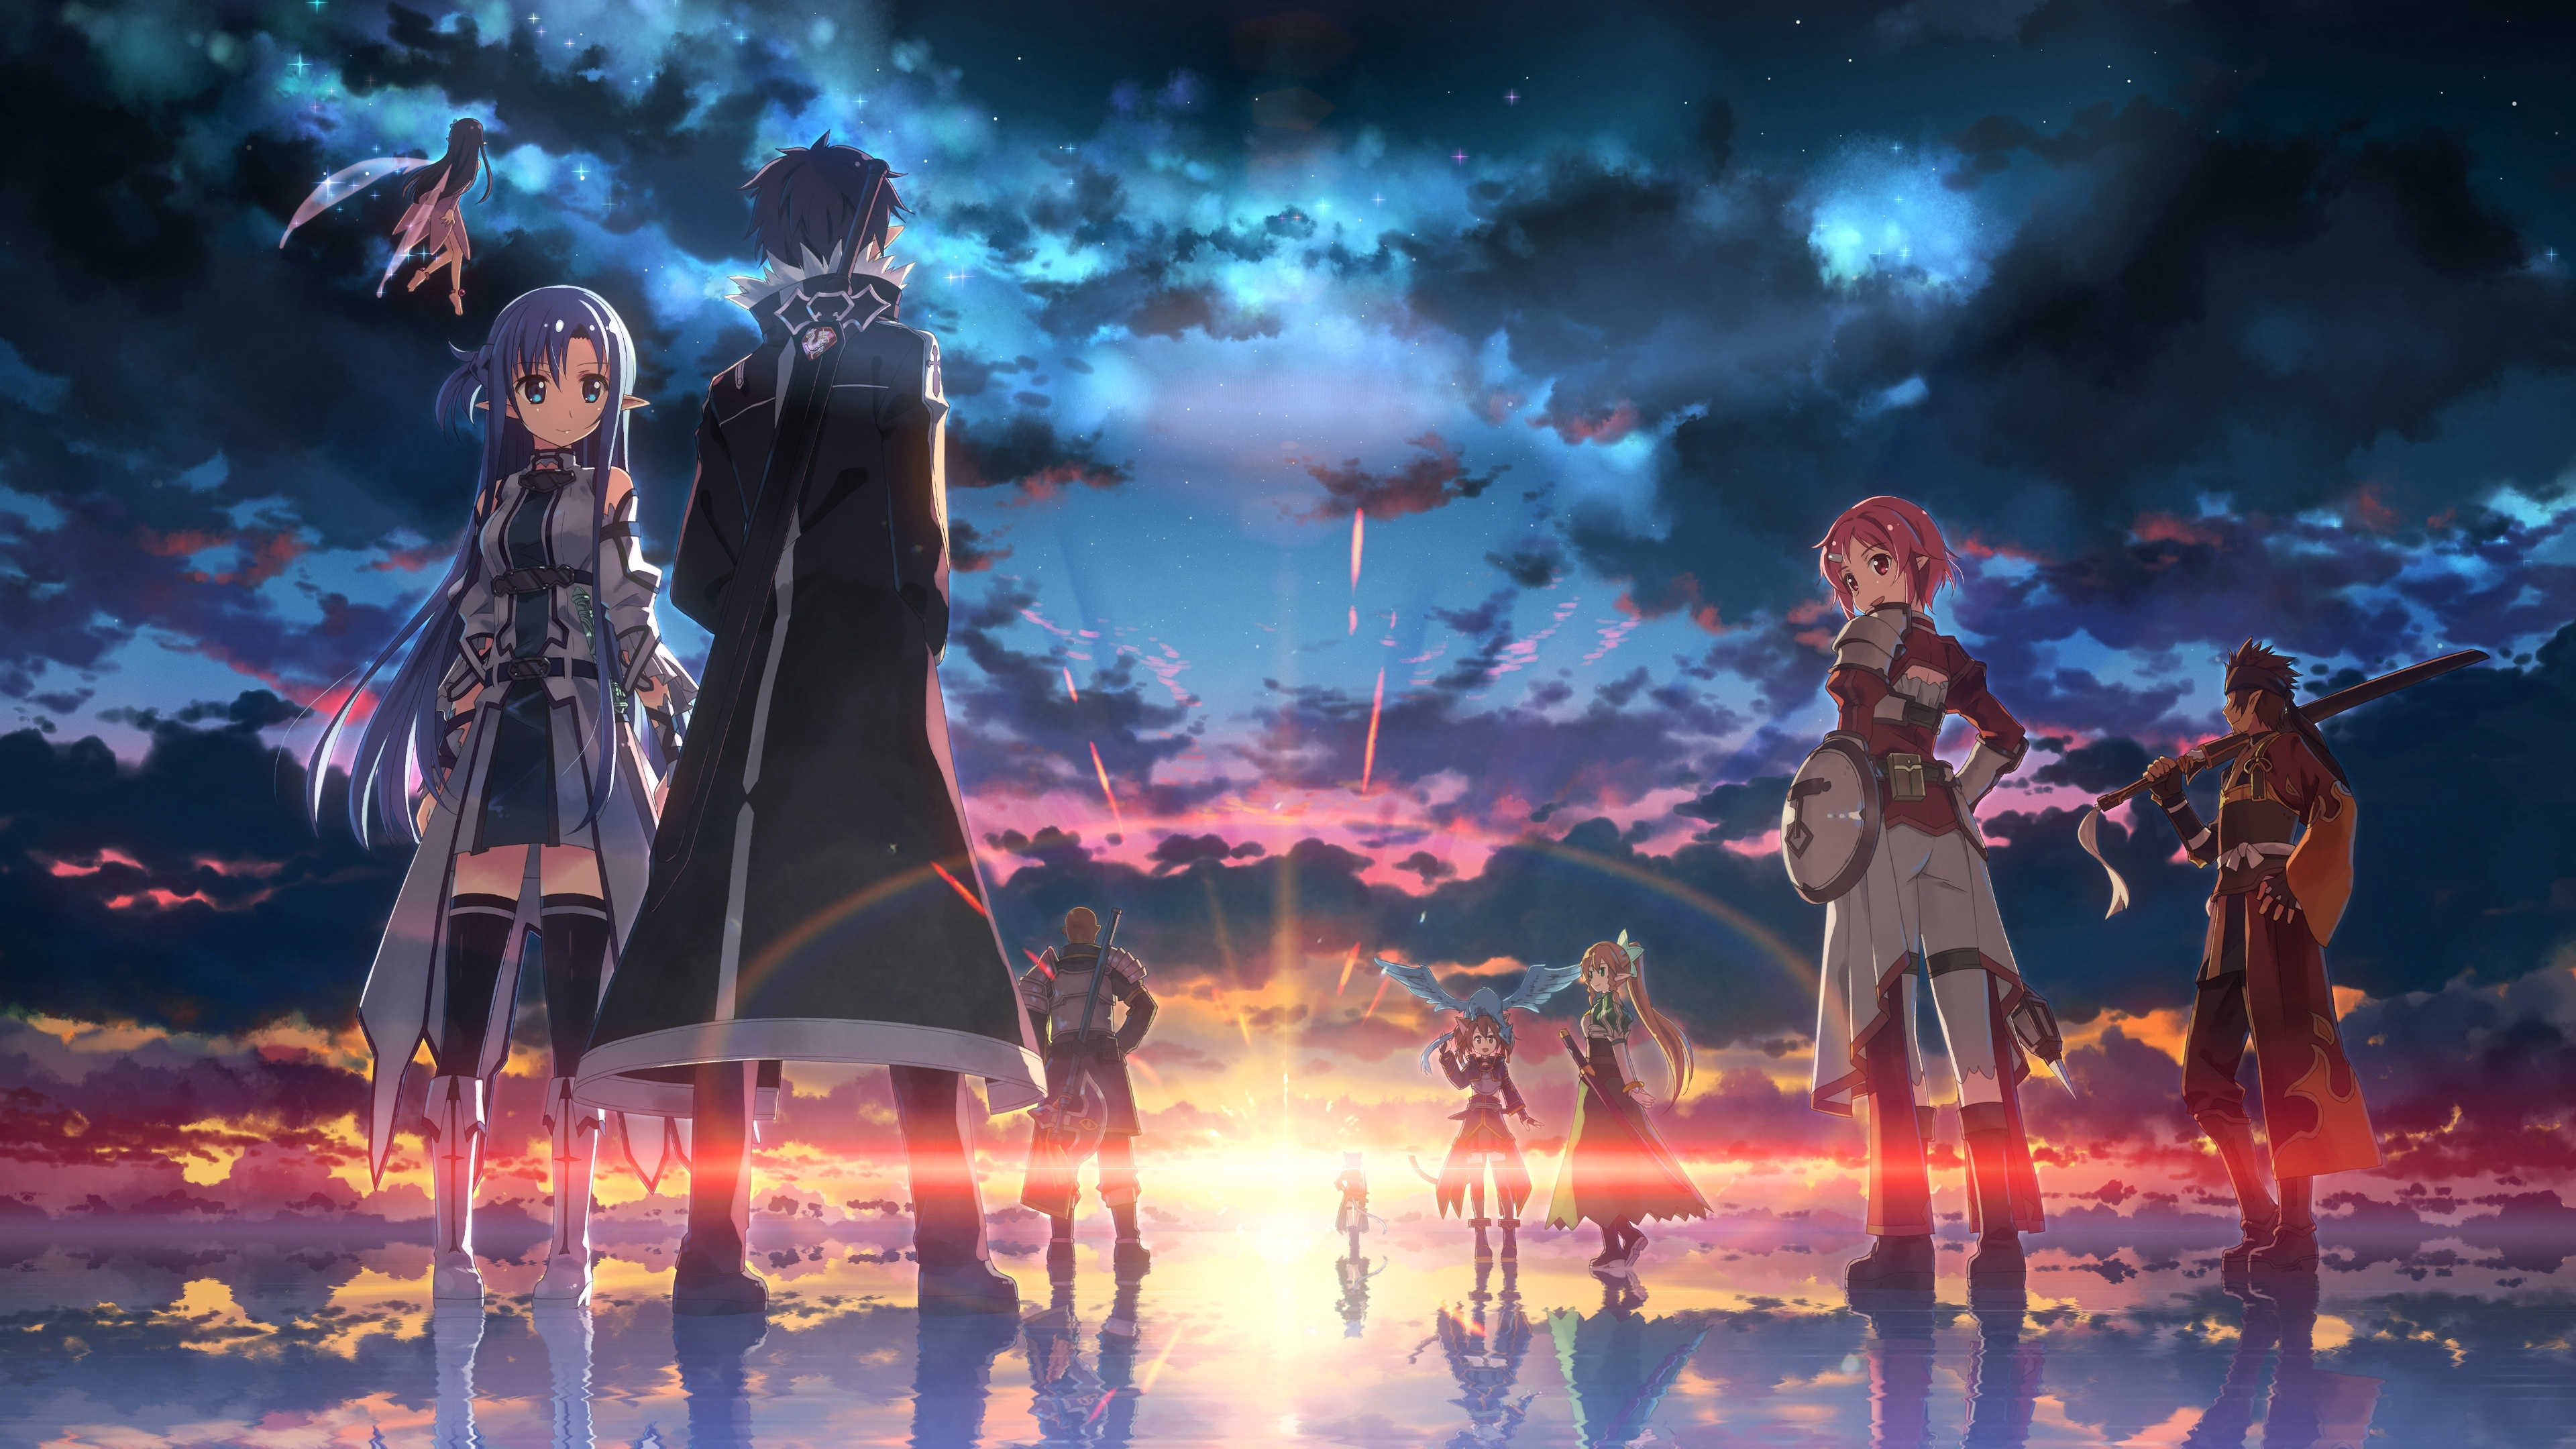 4333 Sword Art Online Hd Wallpapers Background Images